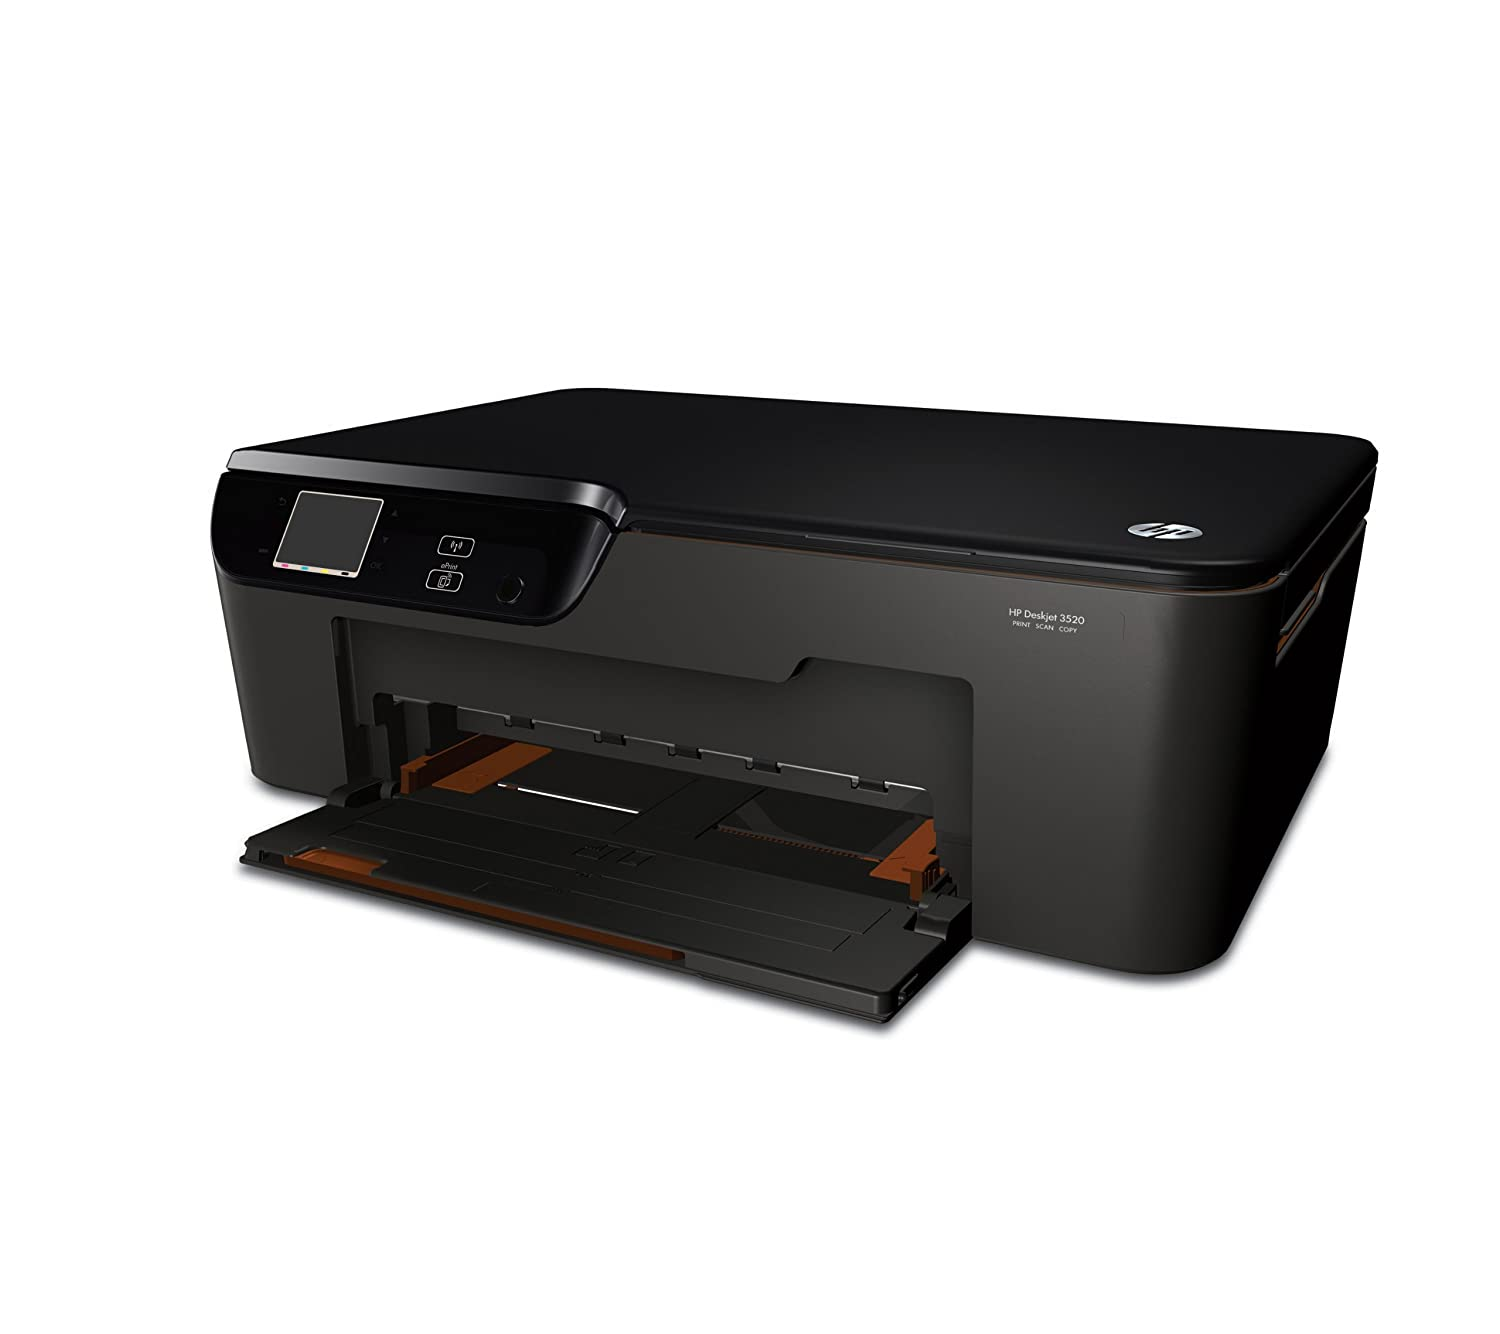 HP Deskjet 3520 e-All-in-One - Impresora multifunción de tinta color (A4, monocromático 8 páginas por minuto, color 7.5 páginas por minuto, USB 2.0, ...